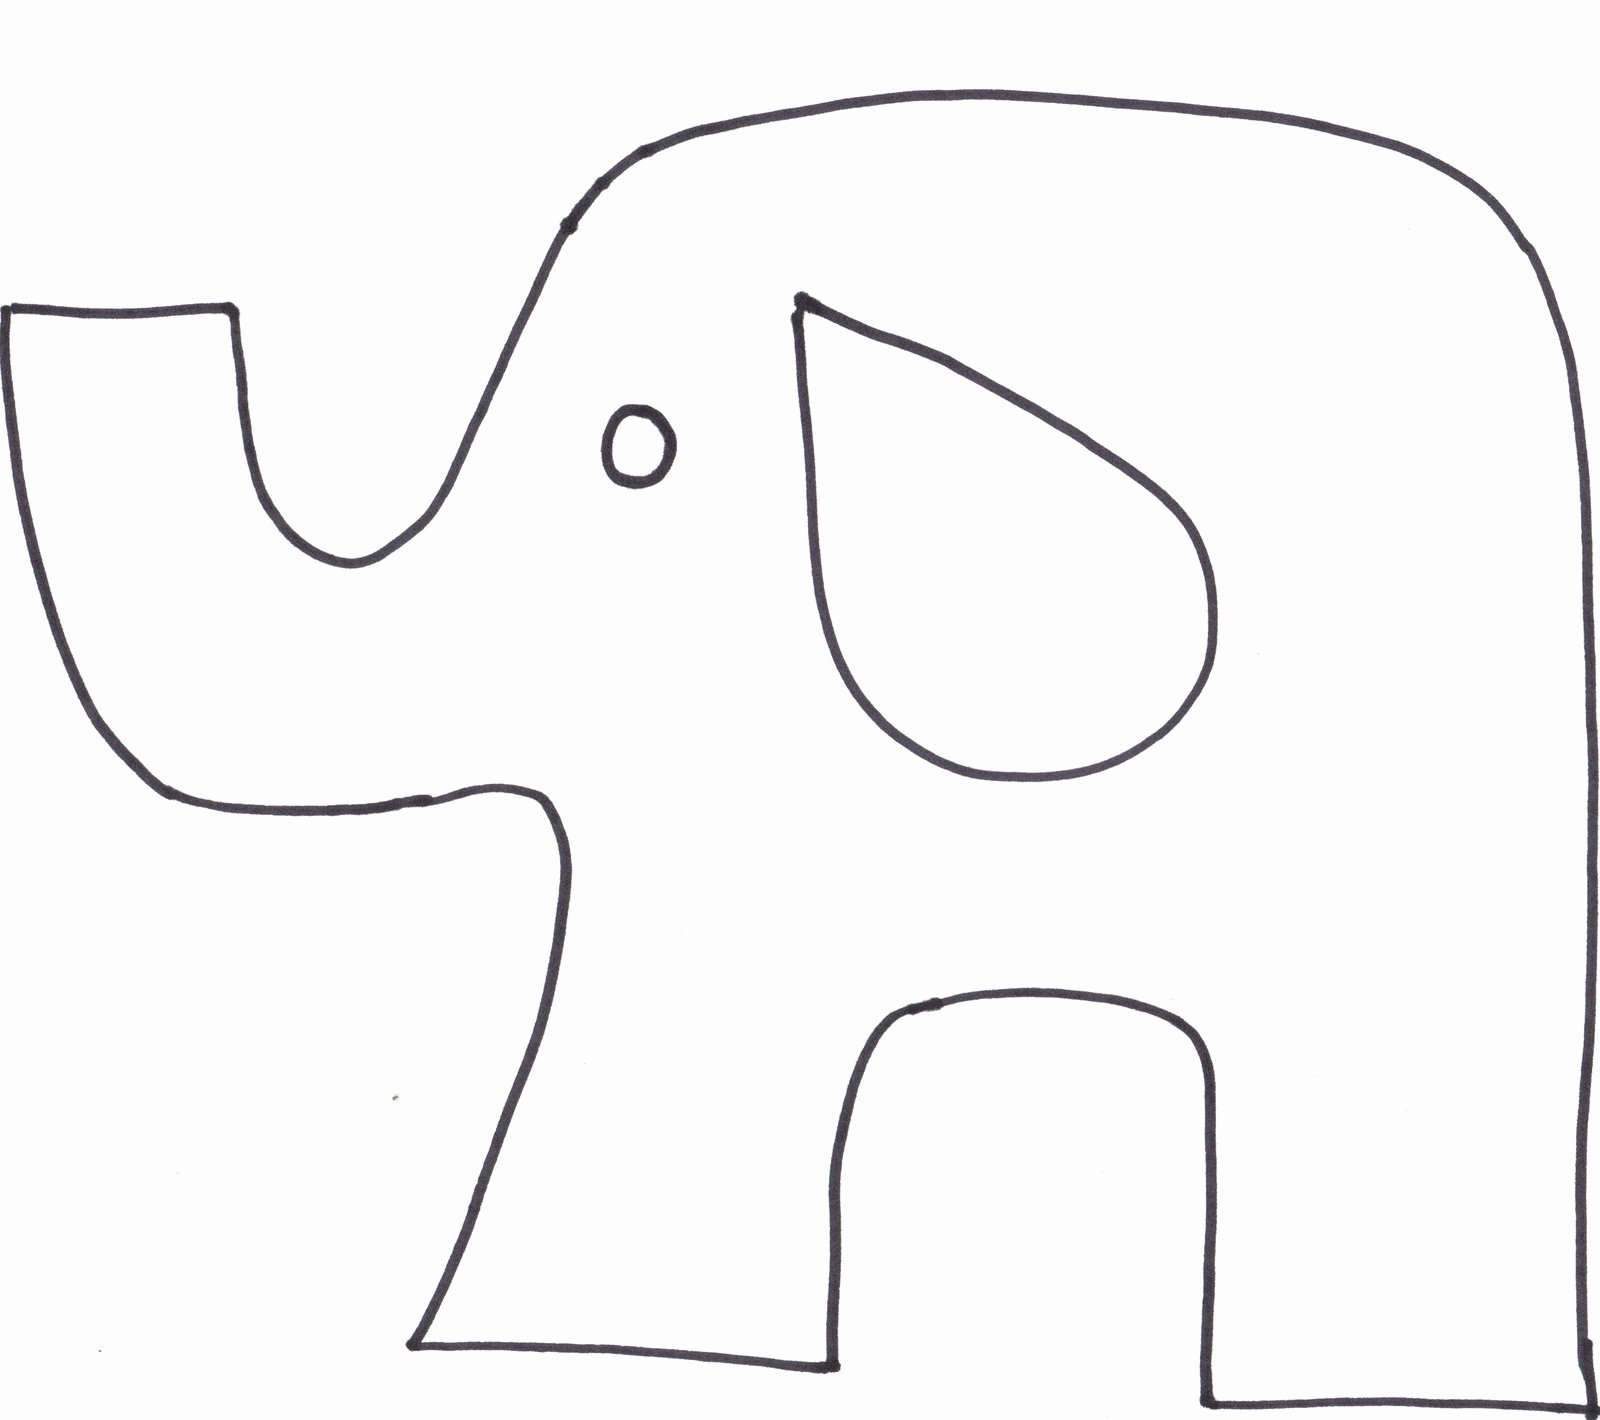 Stuffed Elephant Pattern Template Unique Elephant Stuffed Animal Patterns Free